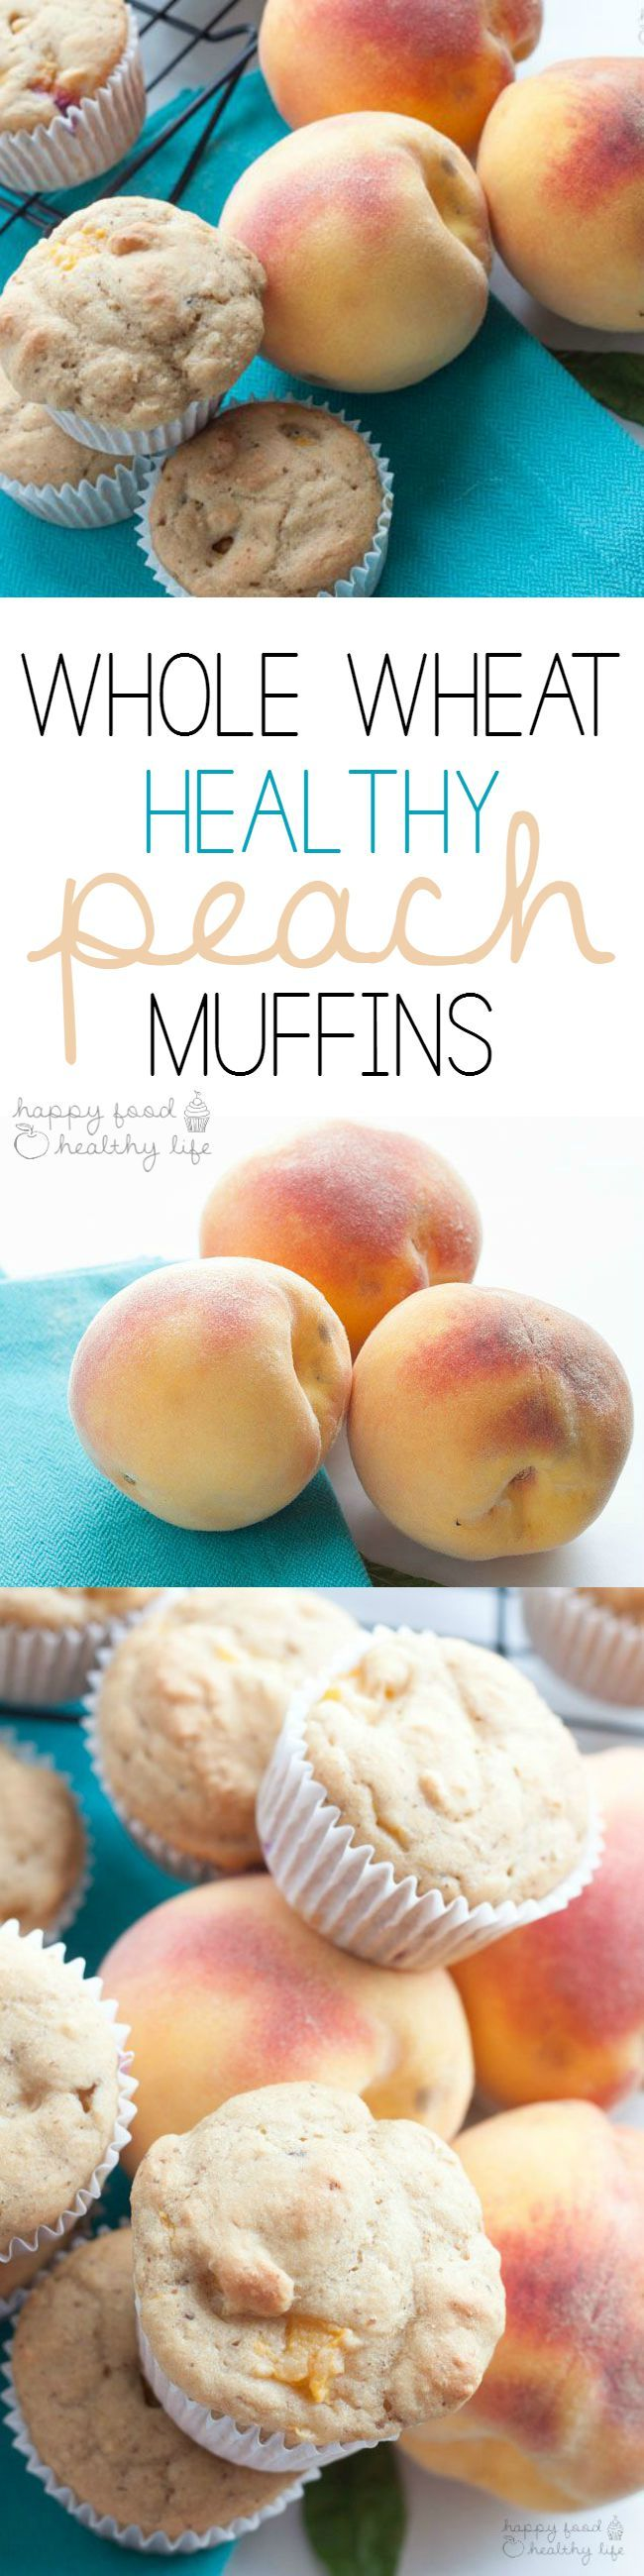 Whole Wheat Healthy Peach Muffins - a healthy breakfast or snack recipe that's perfect for when you're in a hurry and just need to grab something and go. And there's no added sugar!